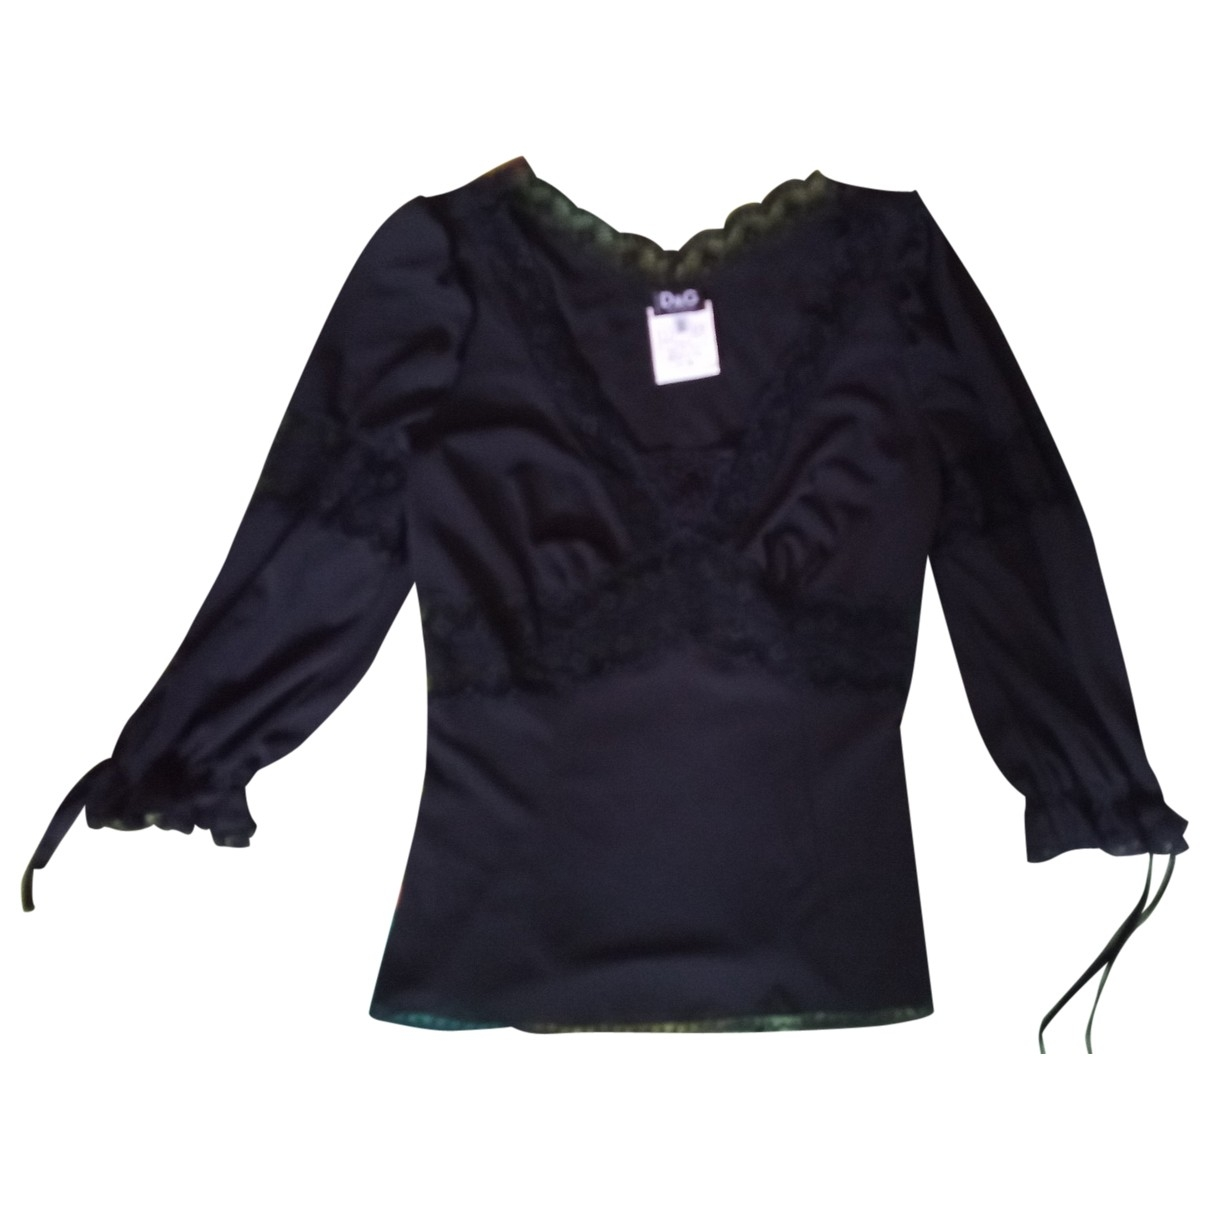 D&g \N Black  top for Women 40 IT